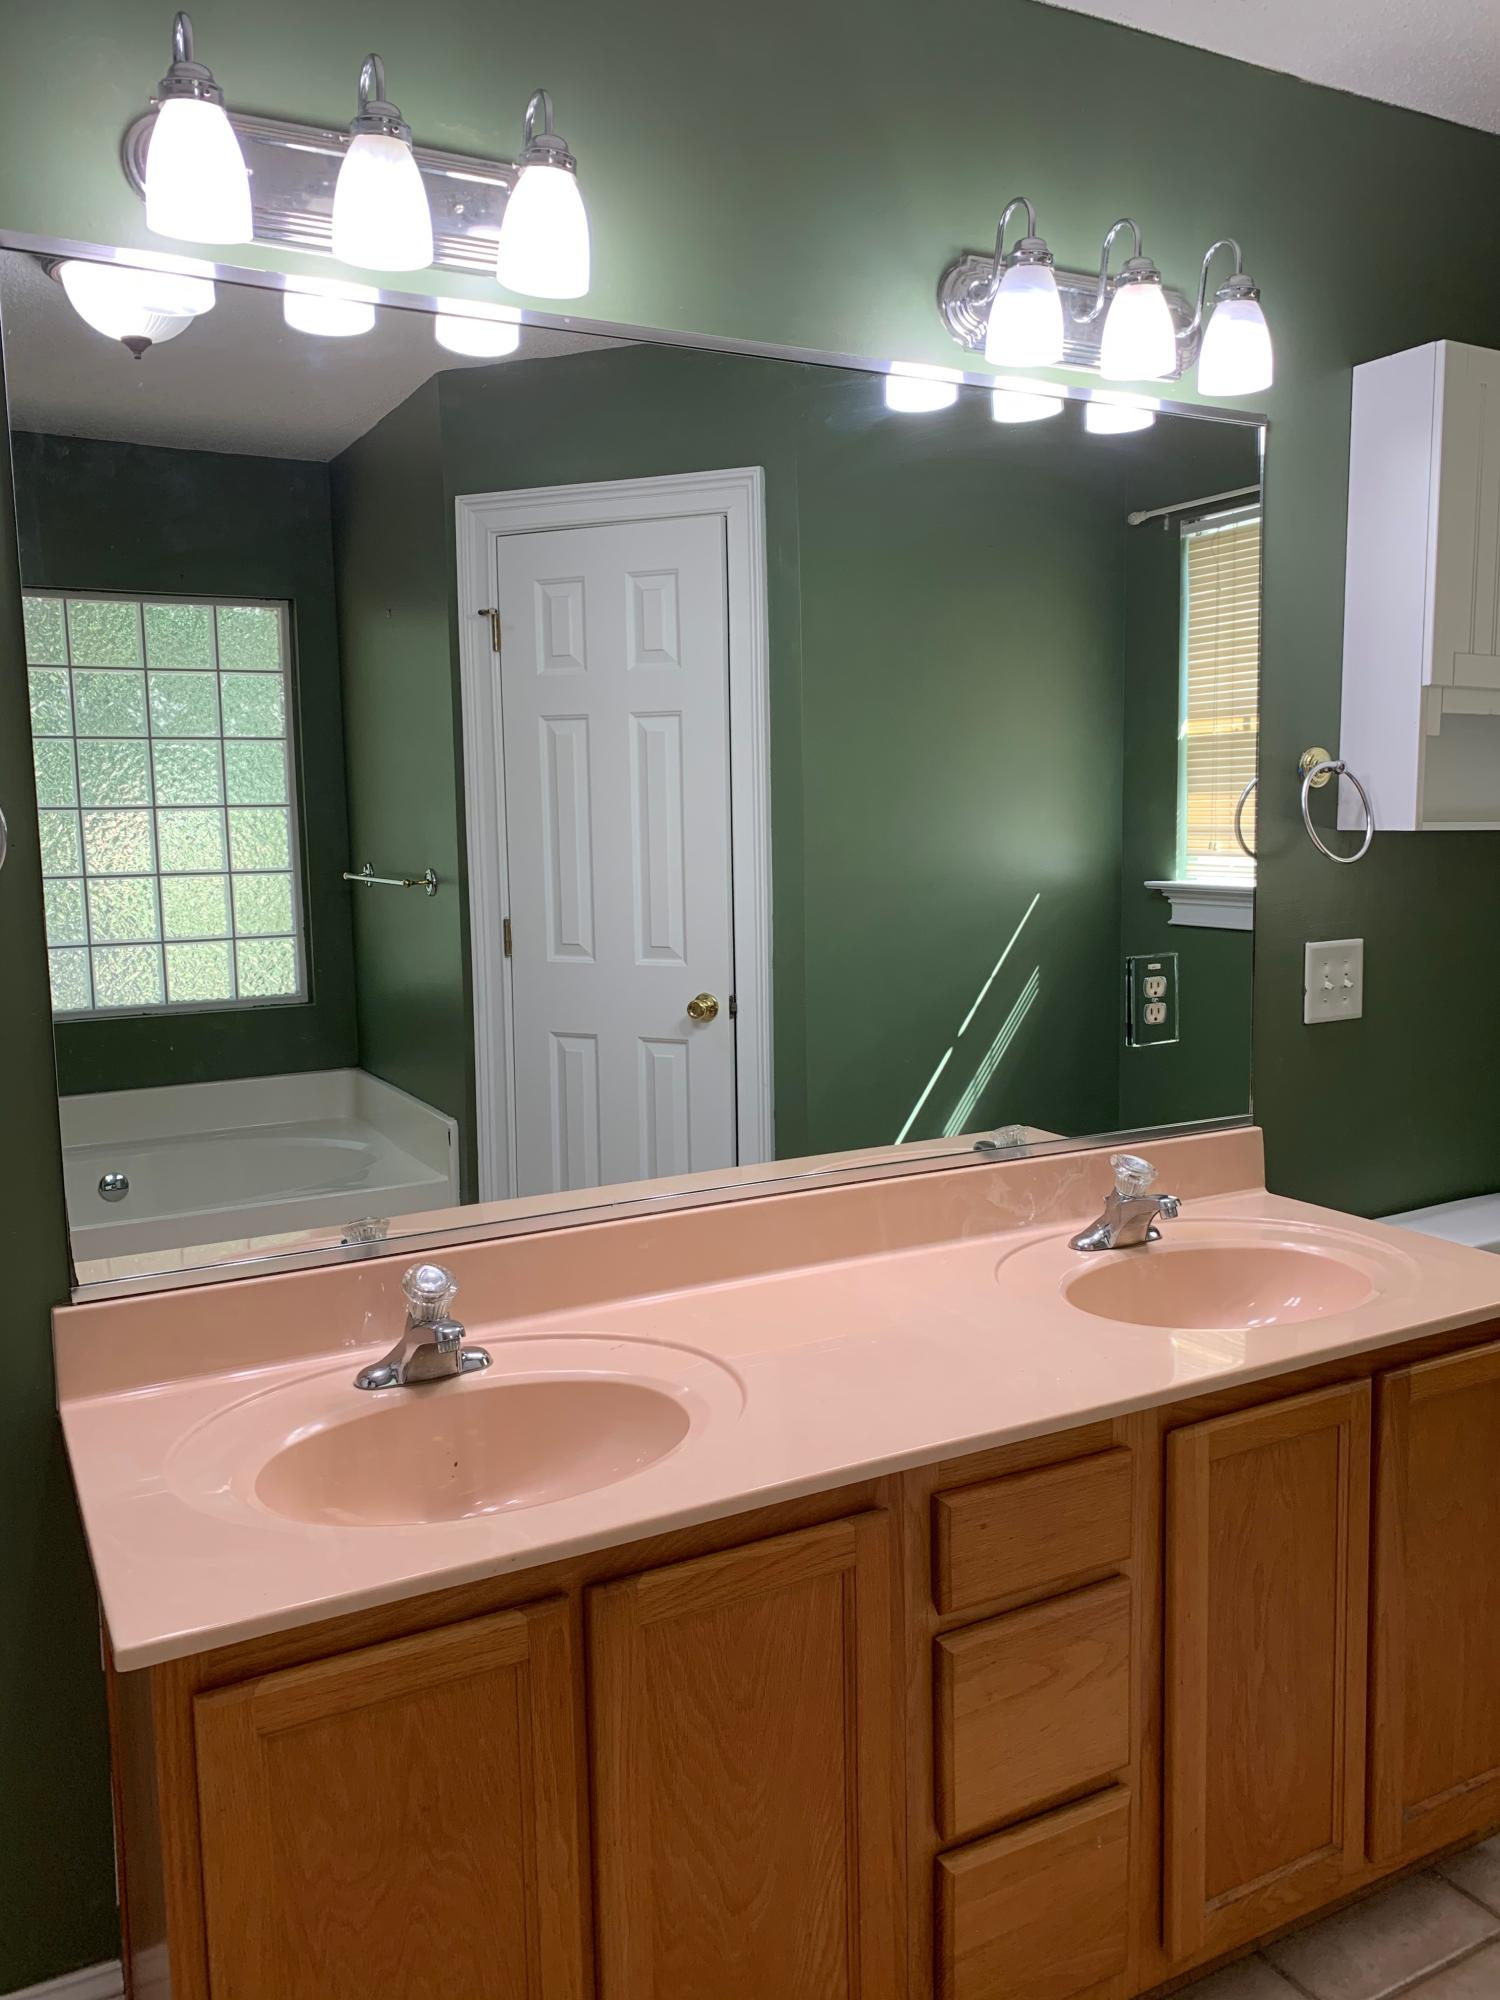 The Bend at River Road Homes For Sale - 3033 Penny, Johns Island, SC - 18